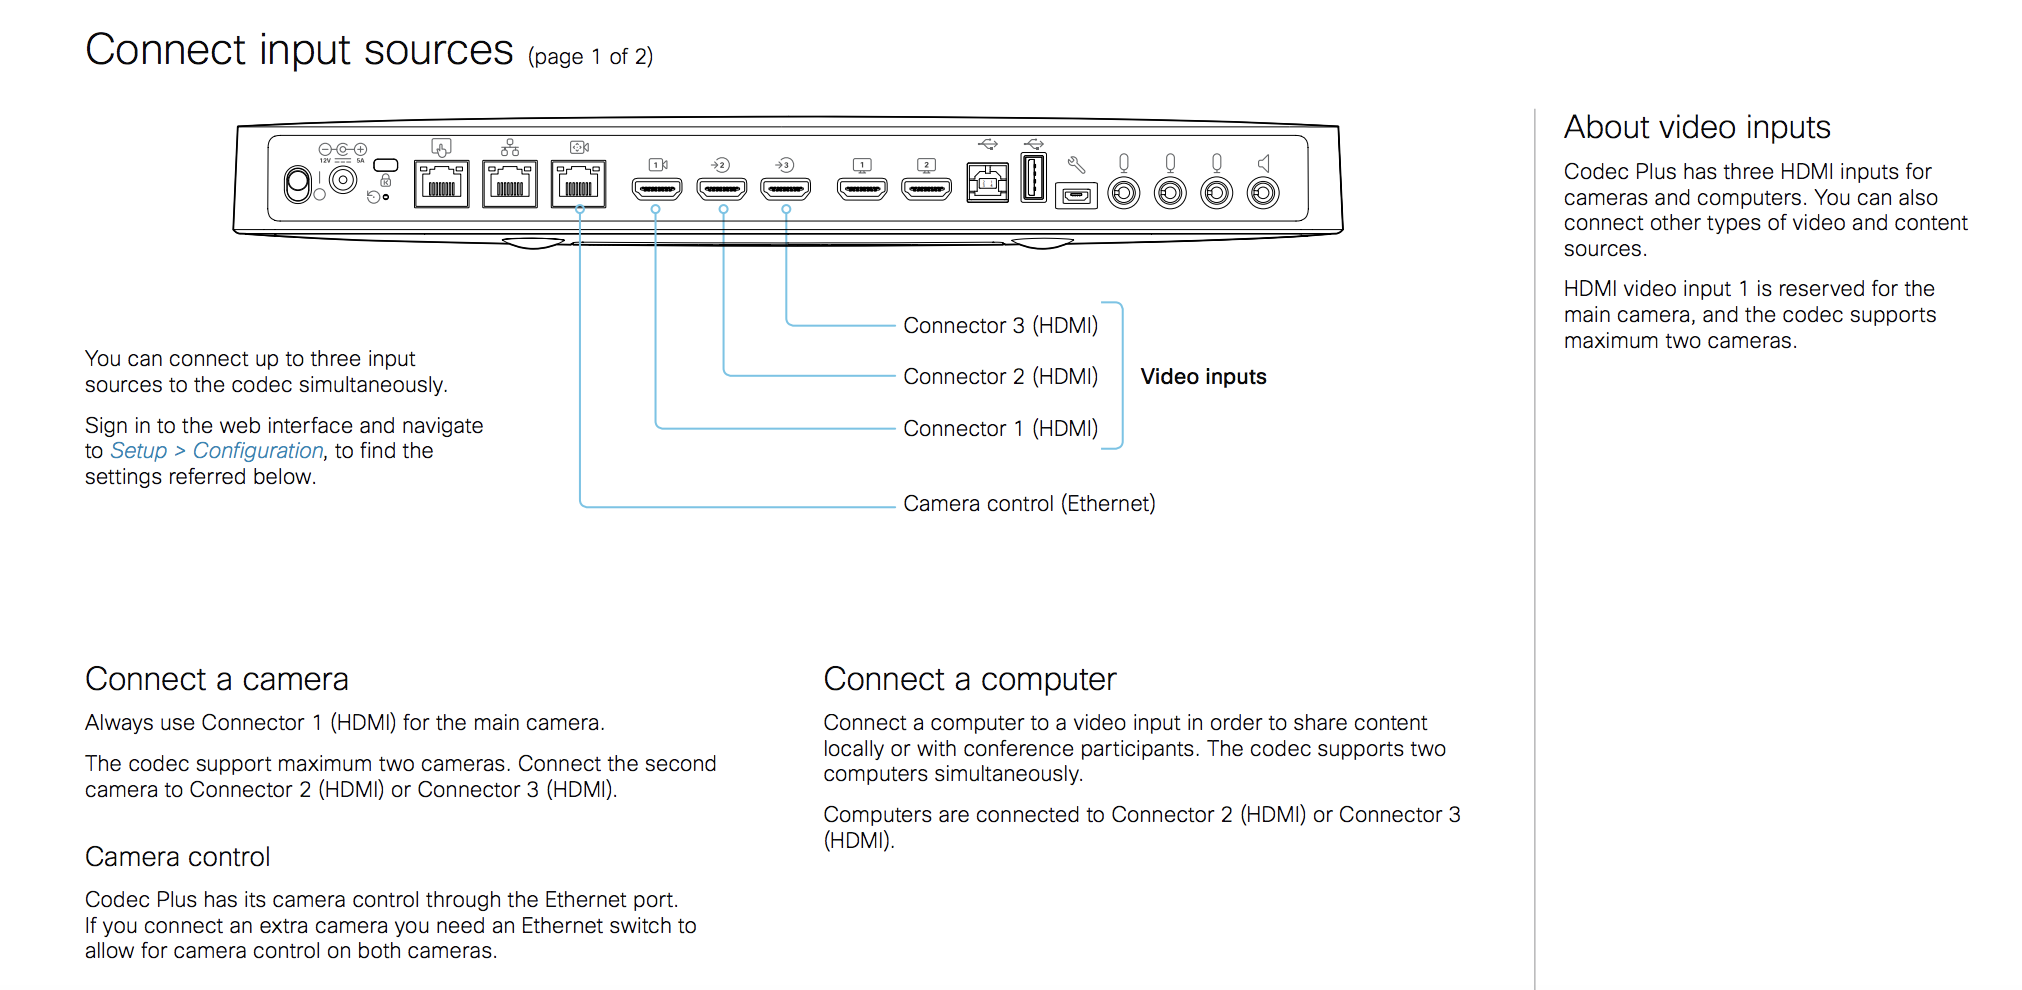 Does Room Kit Plus support 2 cameras? - Cisco Community